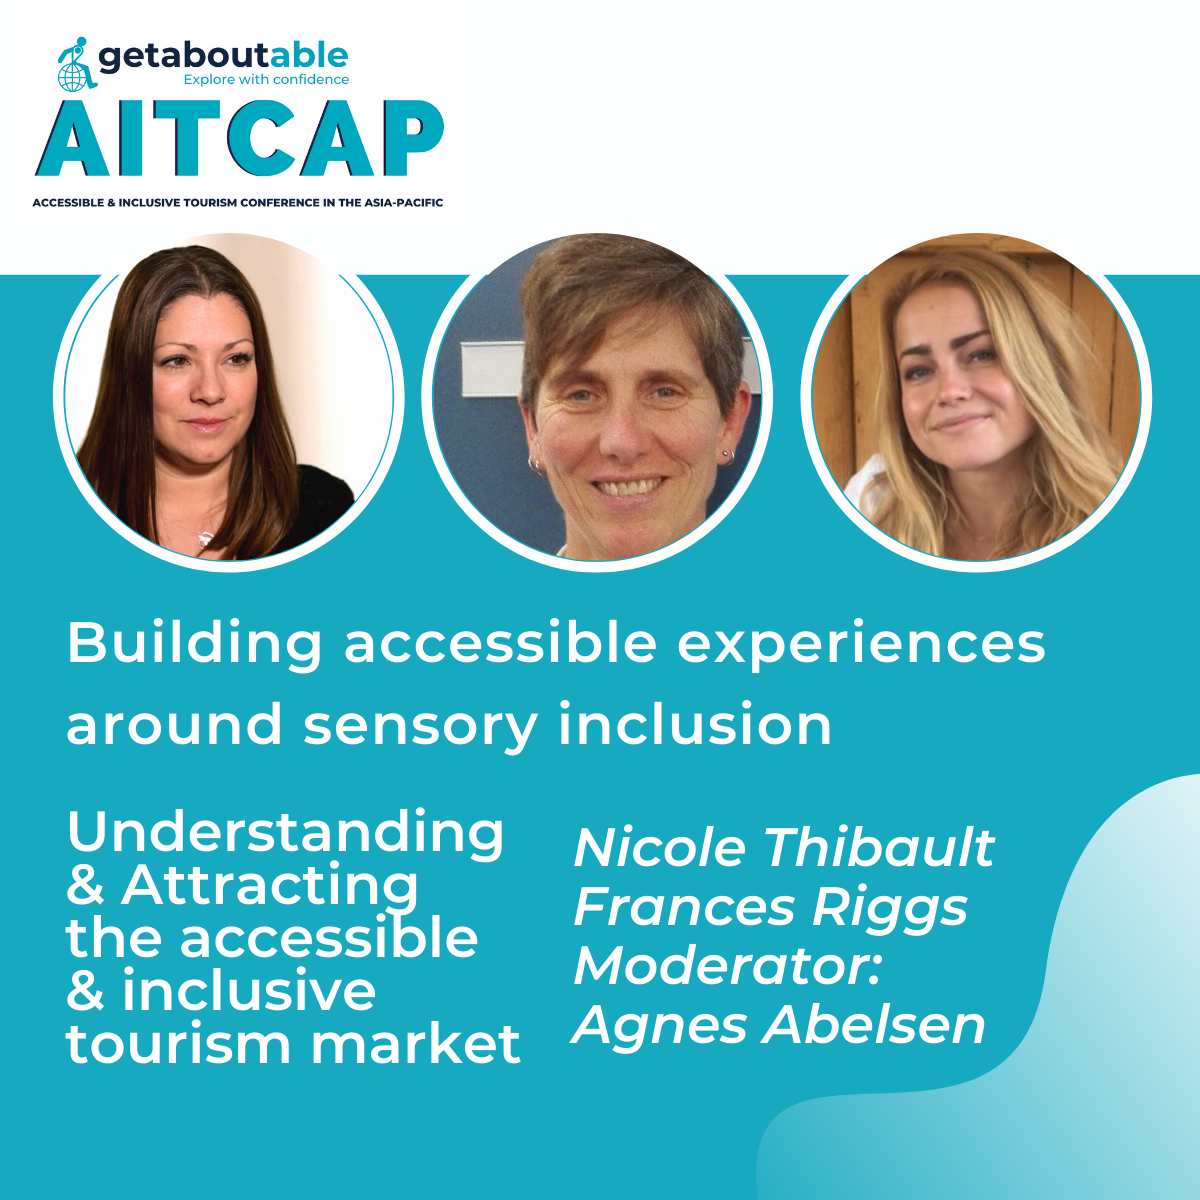 Panel discussion AITCAP Building accessible experiences around sensory inclusion Nicole Thibault Frances Riggs Agnes Abelsen